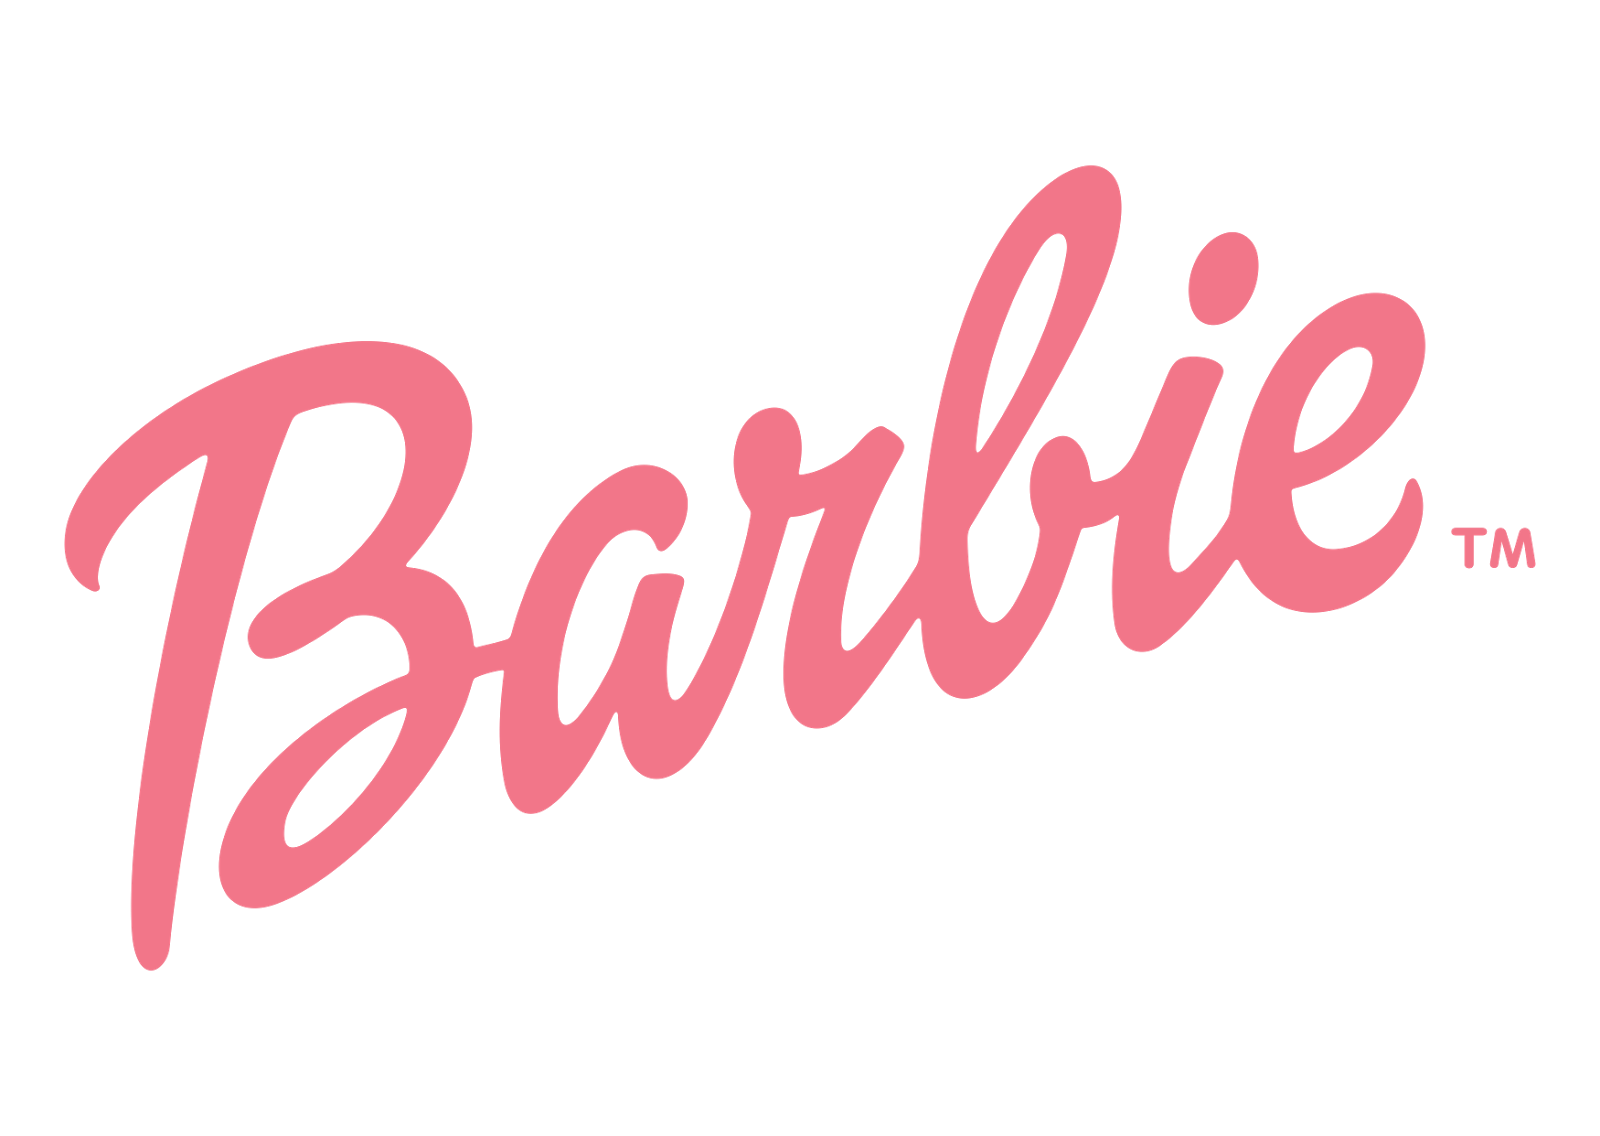 Barbie Logo Vector ~ Format Cdr, Ai, Eps, Svg, PDF, PNG